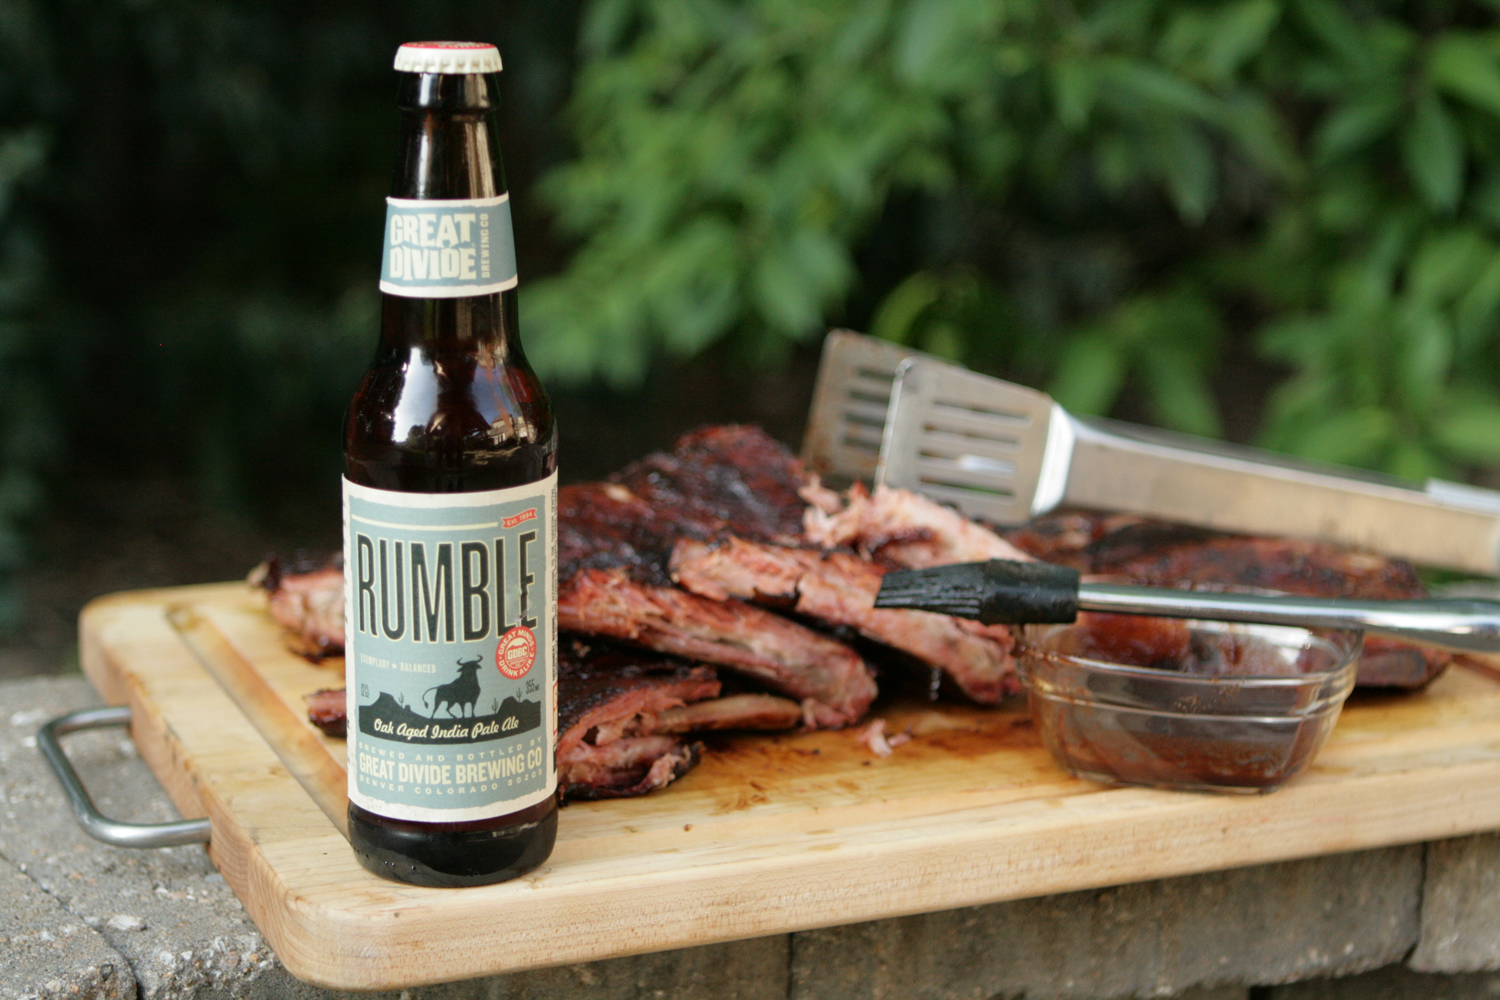 Rumble Summer Colorado IPA Beer is great with bbq.